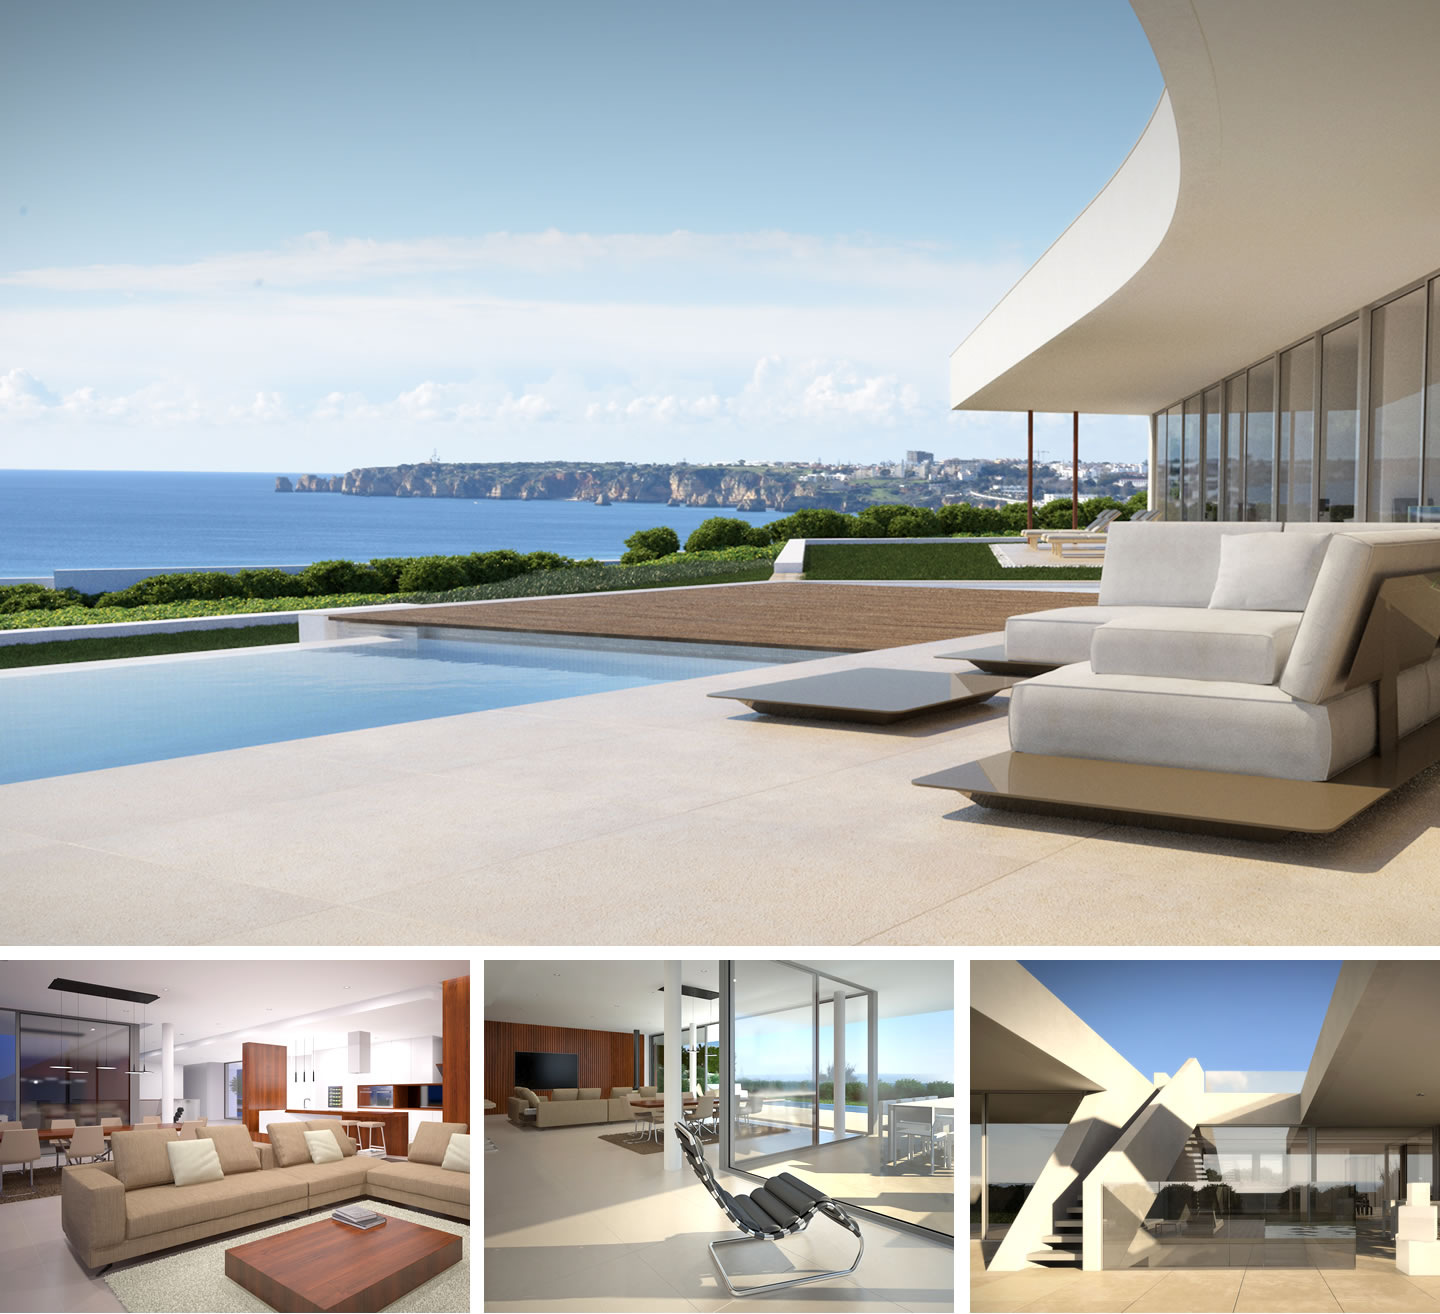 Your Own Dream Villa Designed By Renowned Architect, Mario Martins